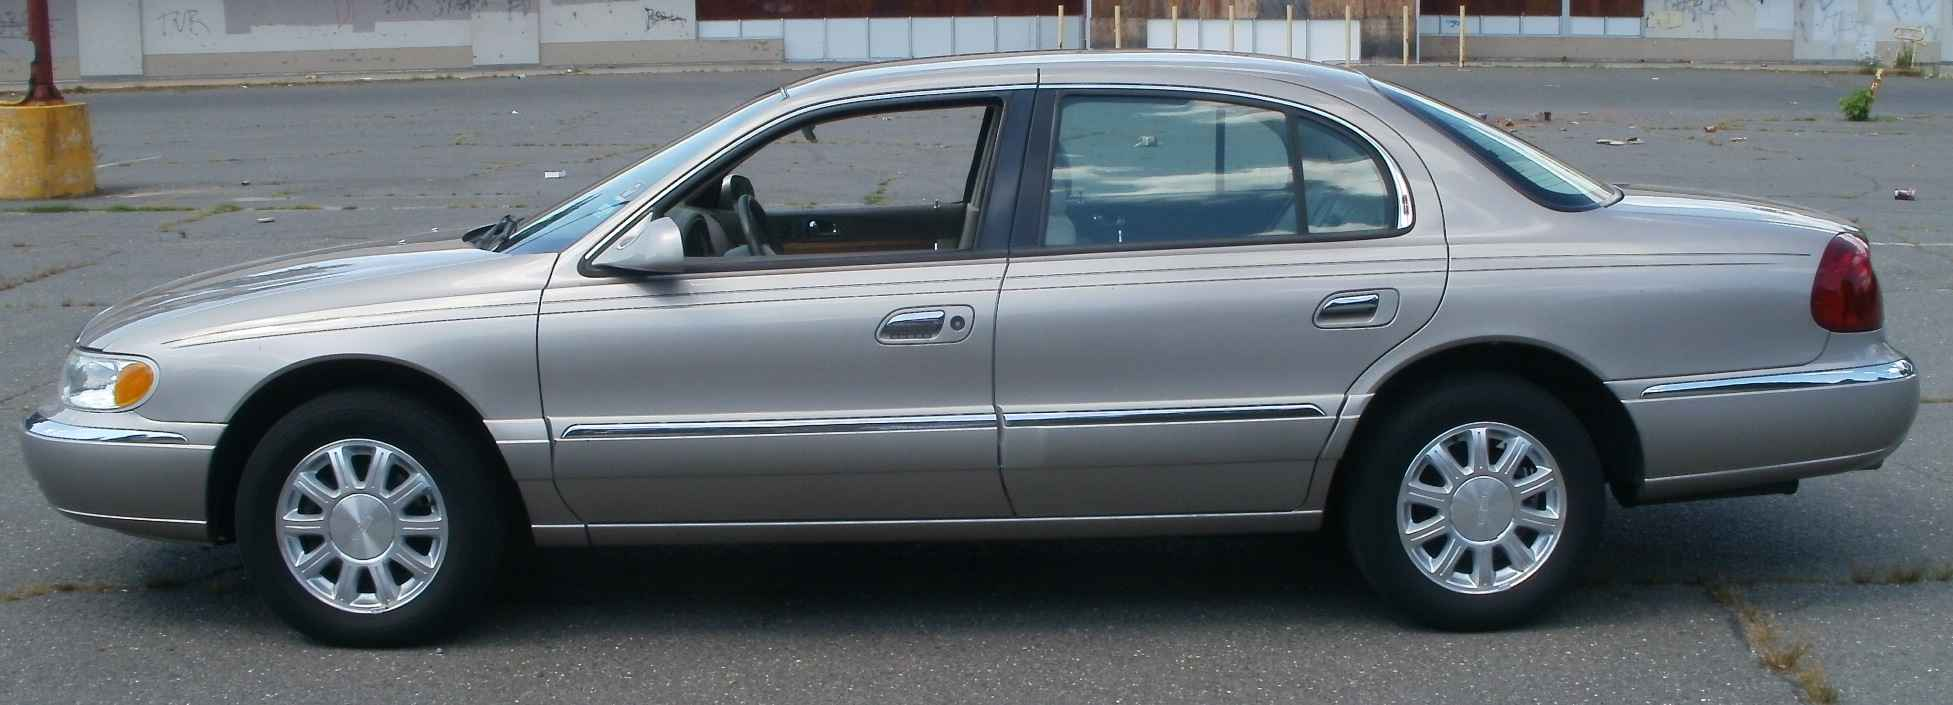 Download 2001-lincoln-continental-7.jpg Car